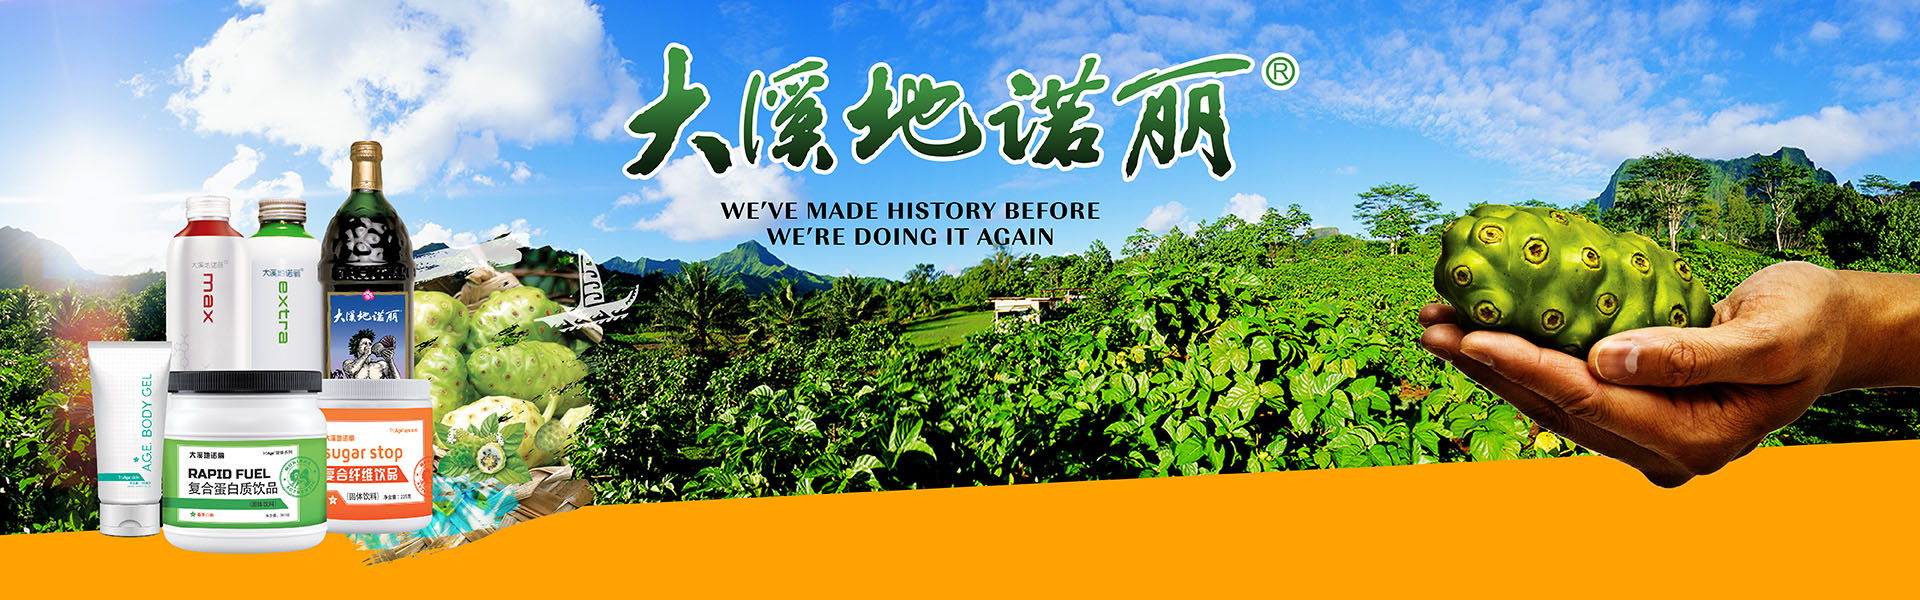 Morinda our history image